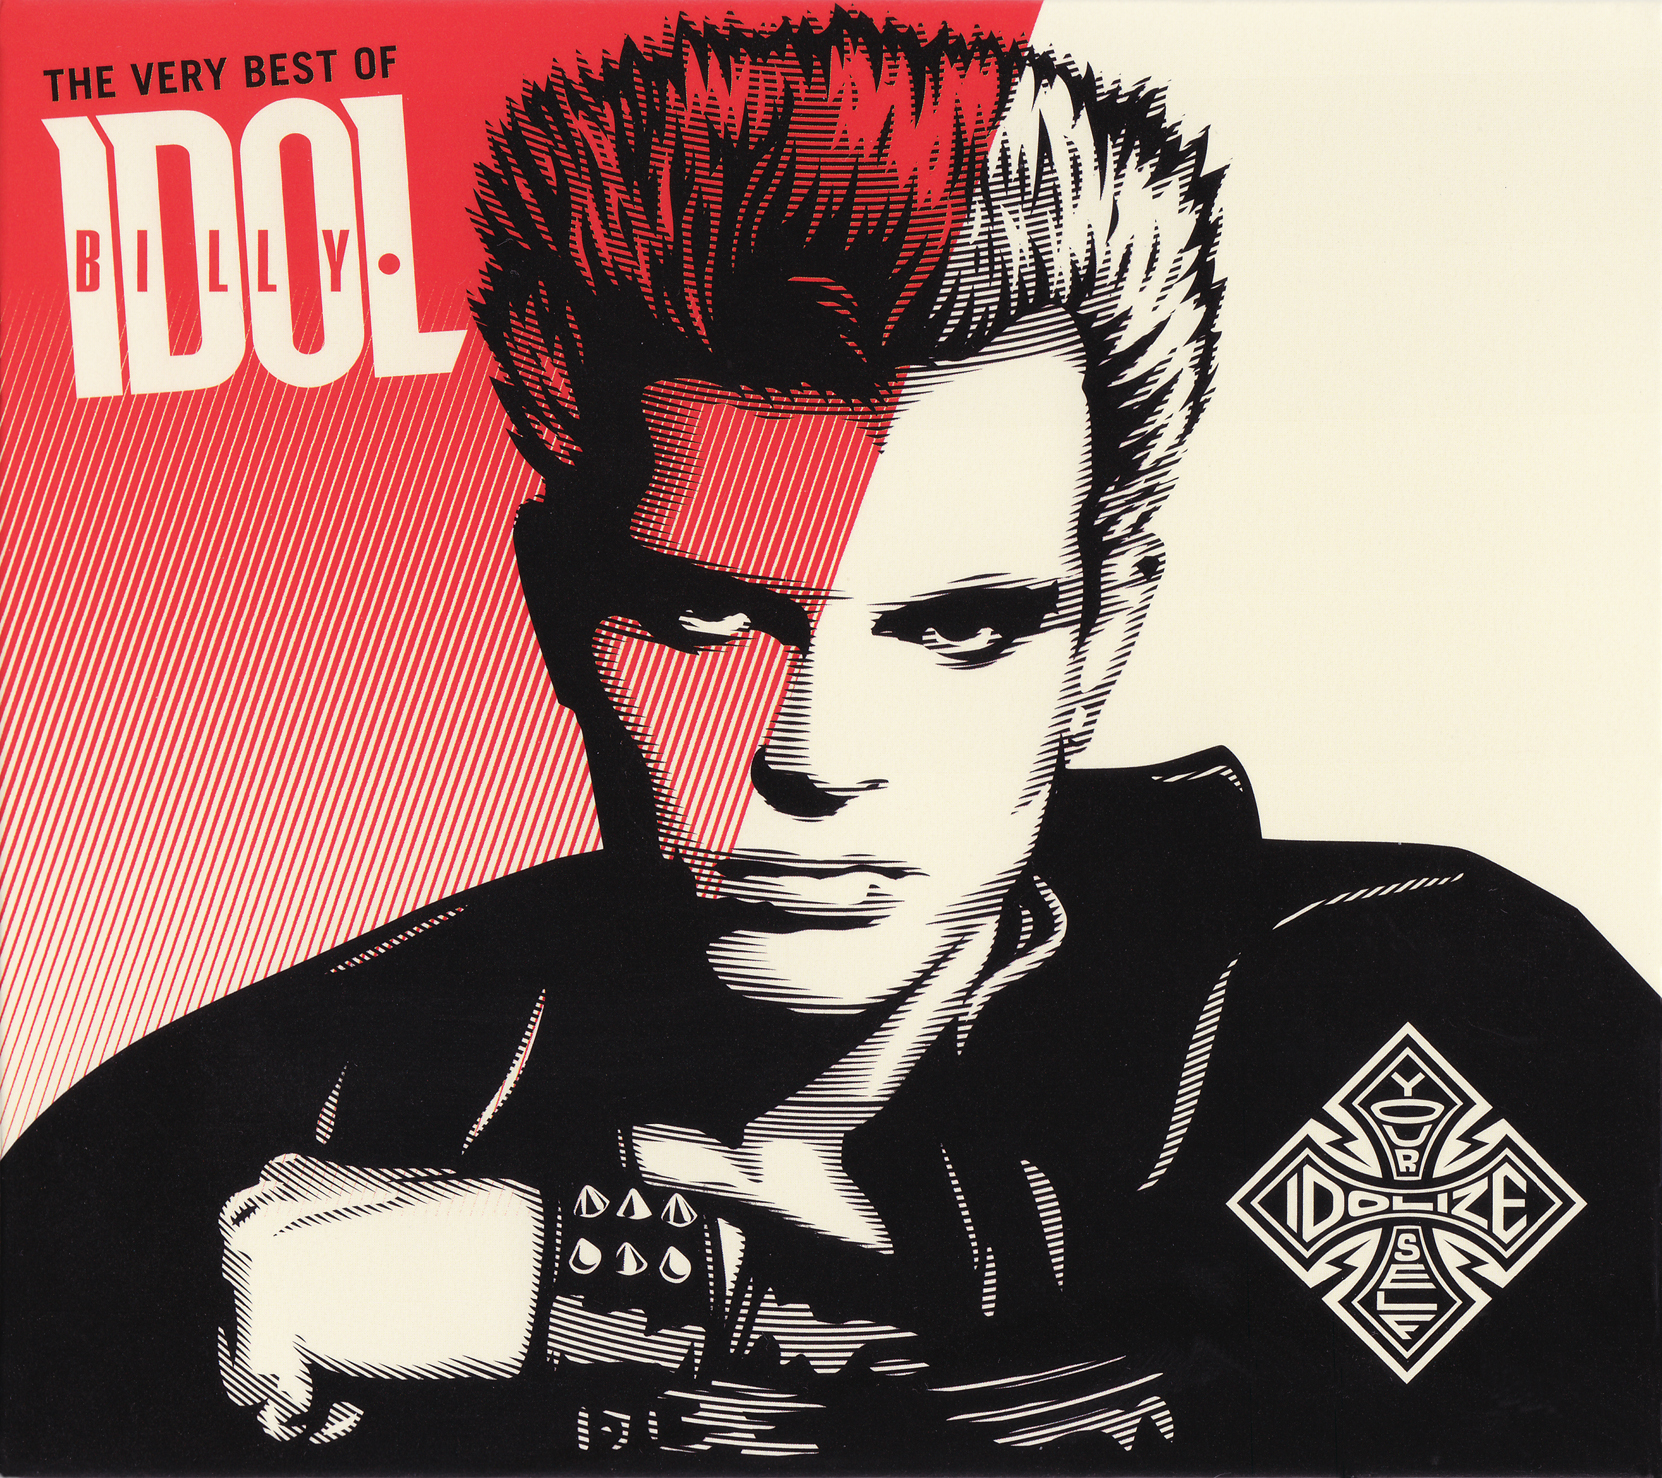 billy idol Album covers HD Wallpaper